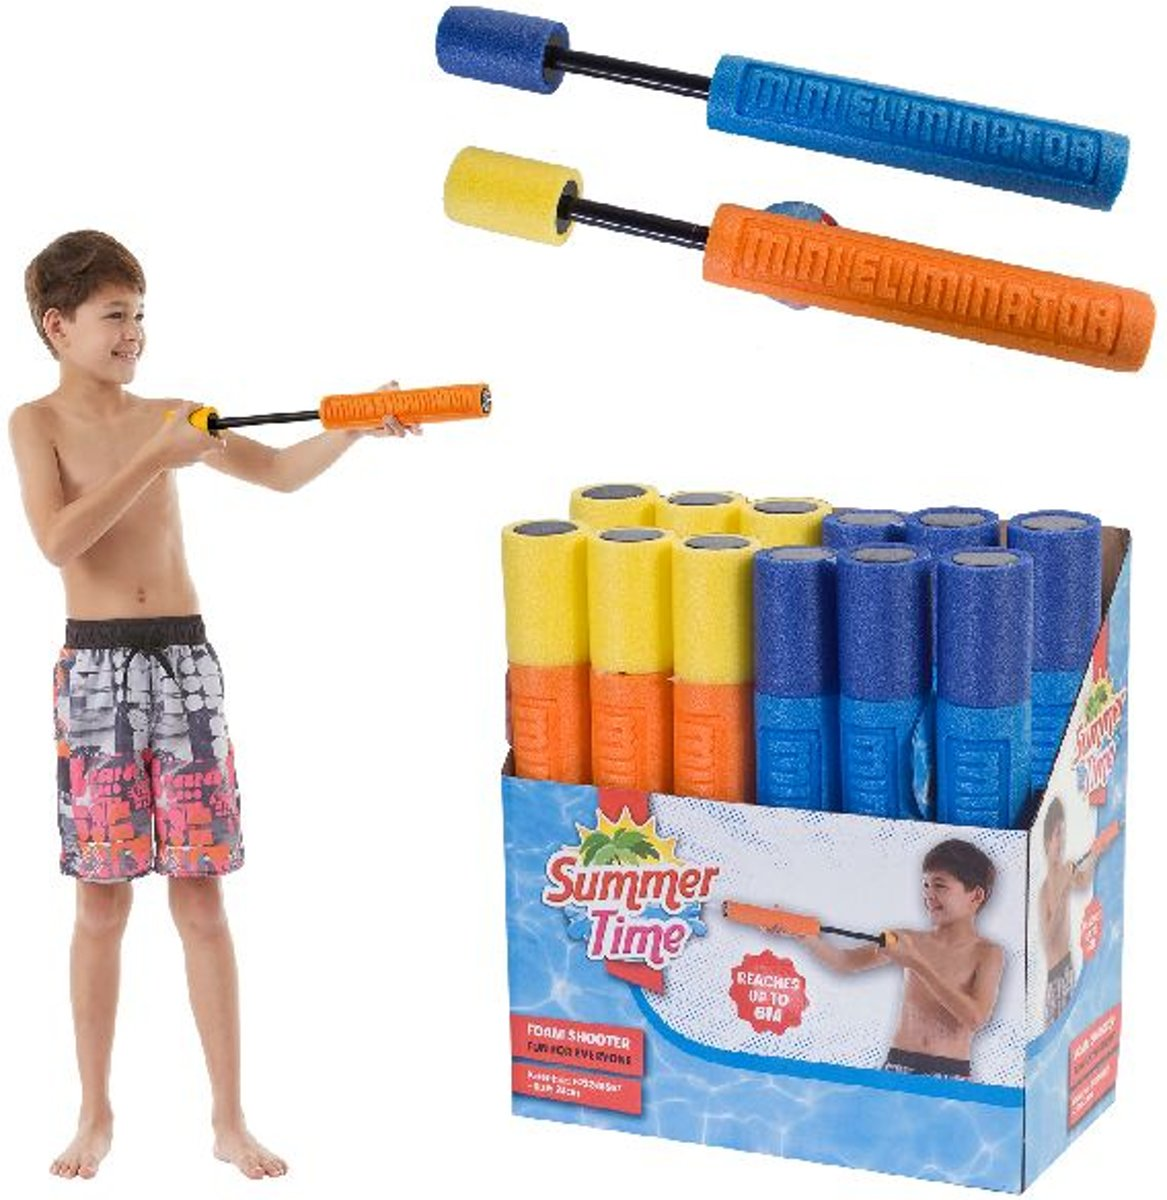 Summertime Foam Shooter 33 Dsp